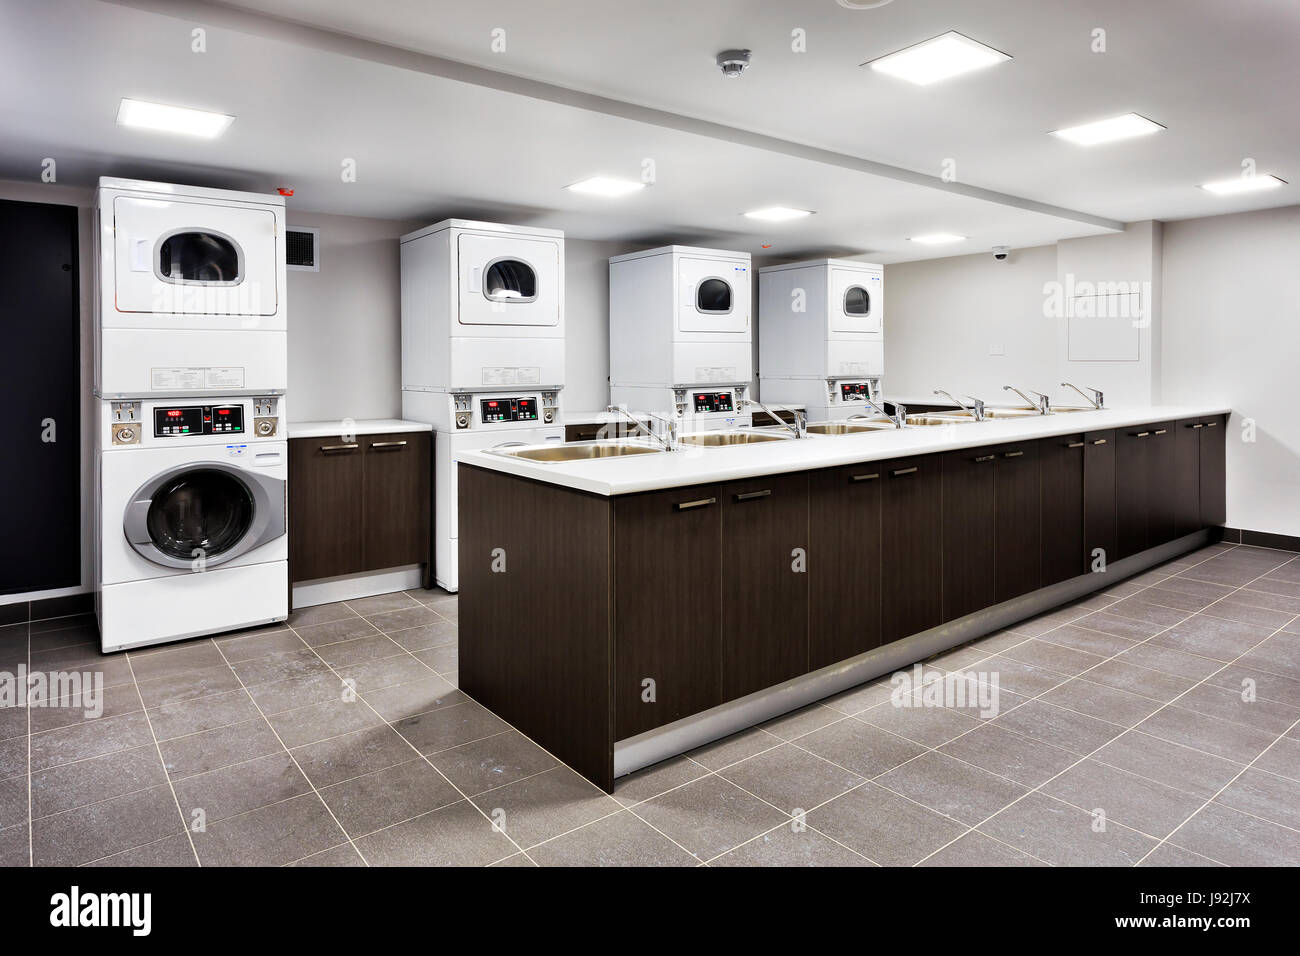 Powerful laundry machines and automatic dryers in big laundromat with a cupboard sinks for rinsing and tap water. - Stock Image